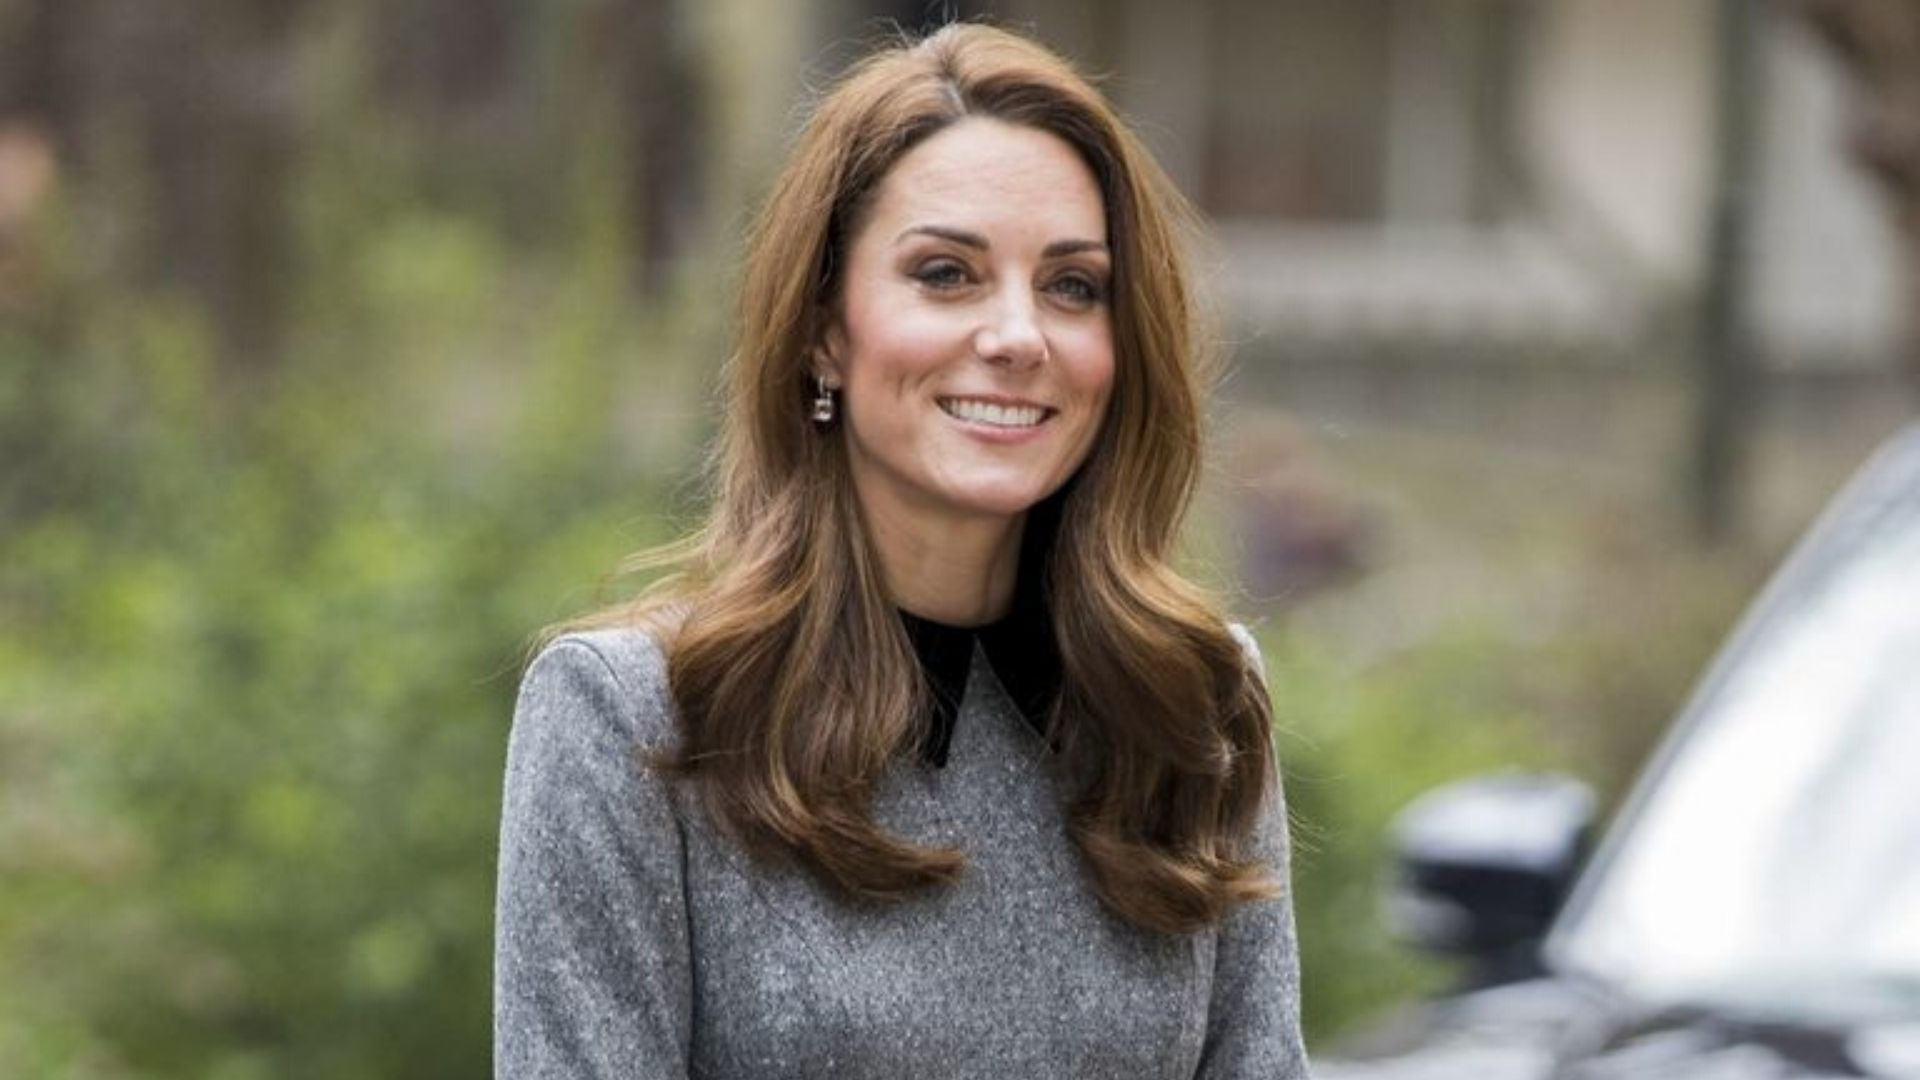 Kate Middleton Just Stepped Out In The Chicest Tweed Skirt Suit